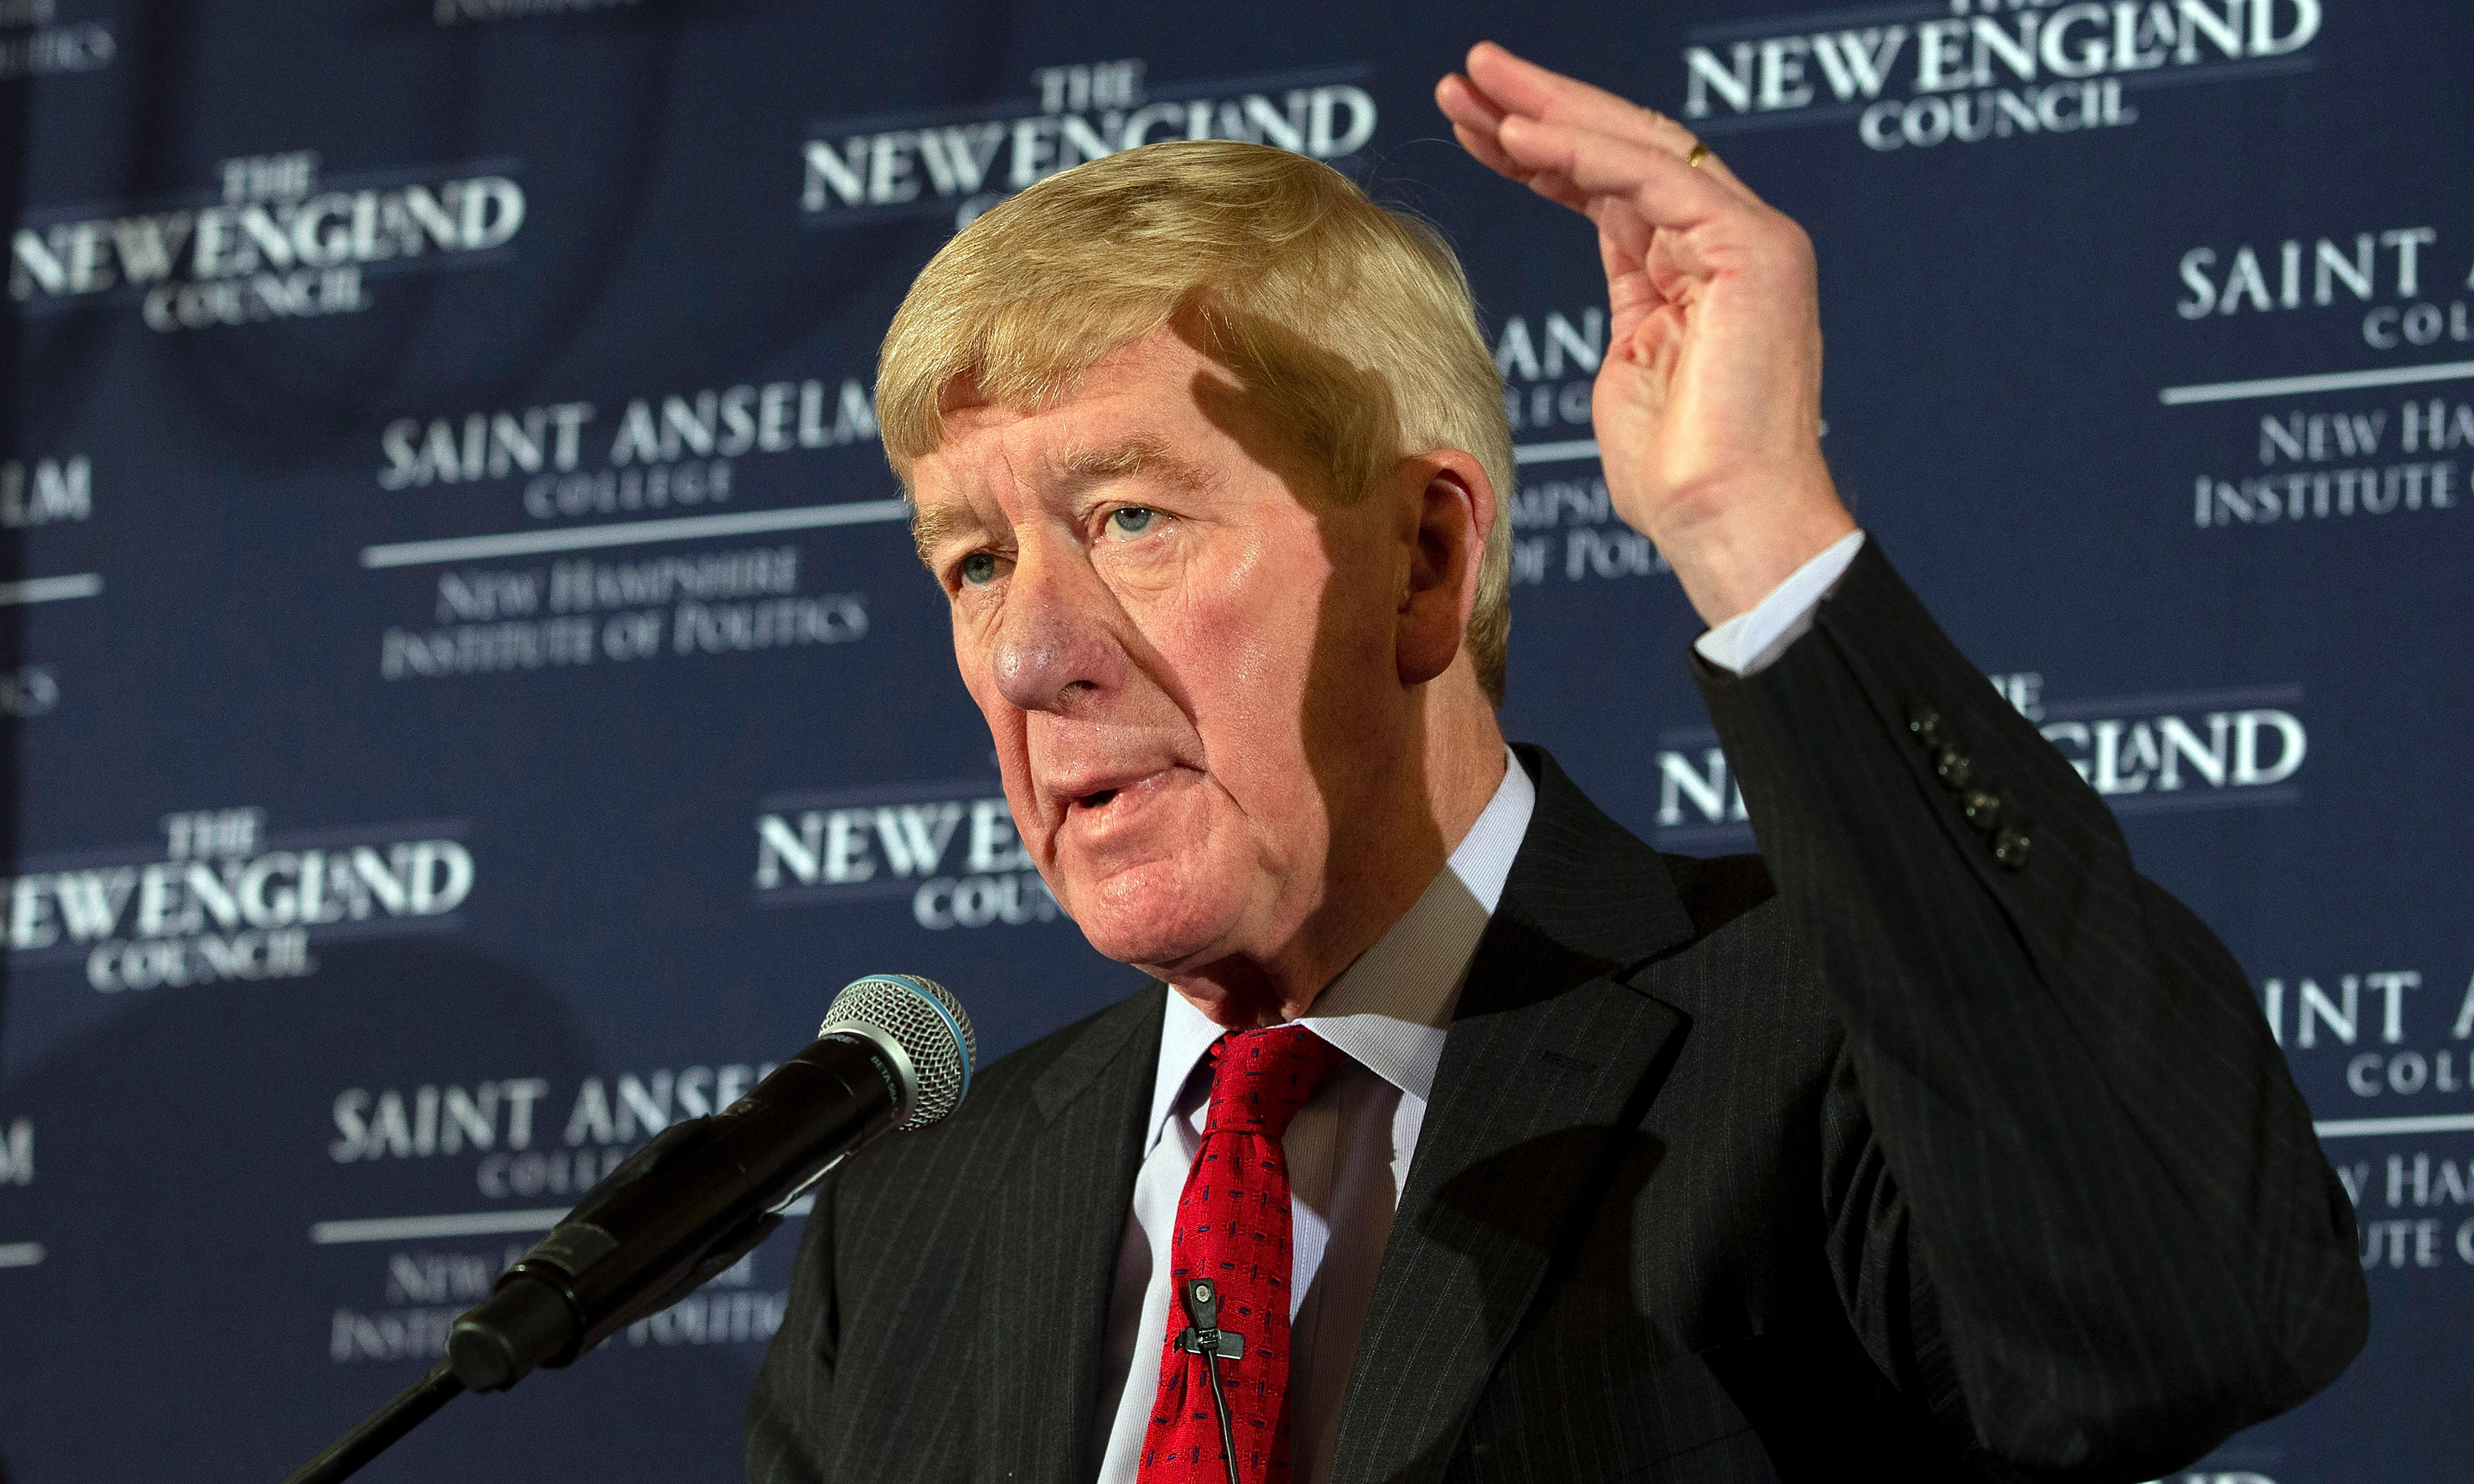 Republican Bill Weld on challenging Trump: 'It's going to be a lot of fun'